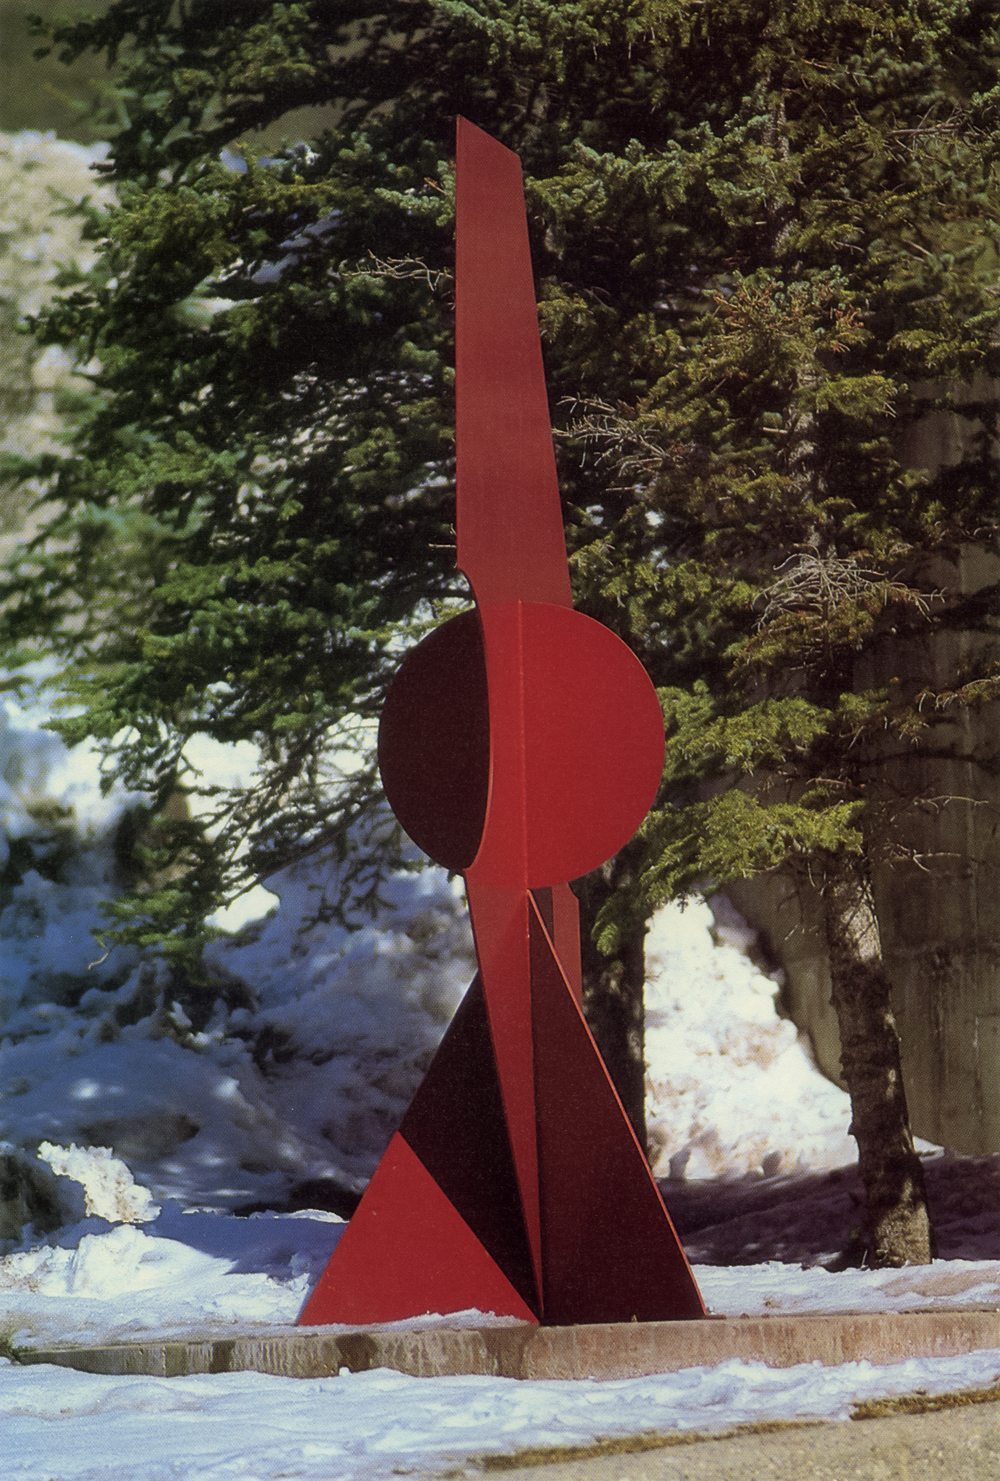 Town of Vail, Vail, Colorado; 1991.  Kaikoo III.  10' x 4' x 5'.